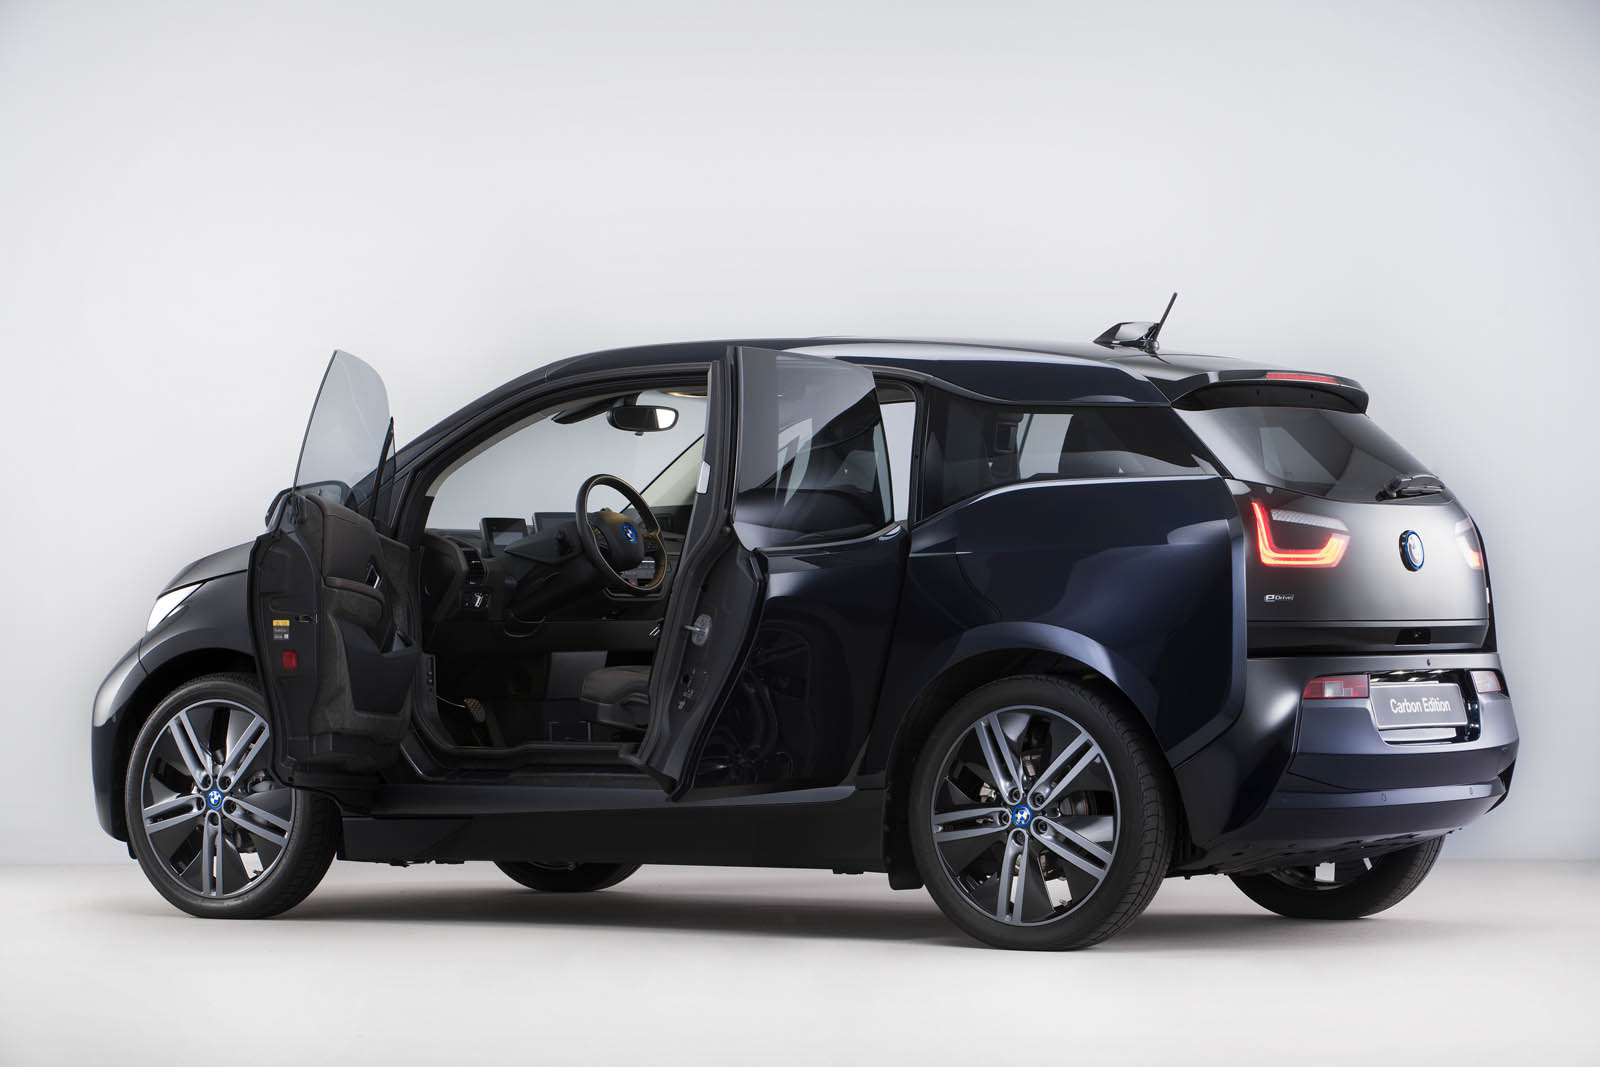 bmw i3 carbon edition is exclusive to the netherlands carscoops. Black Bedroom Furniture Sets. Home Design Ideas